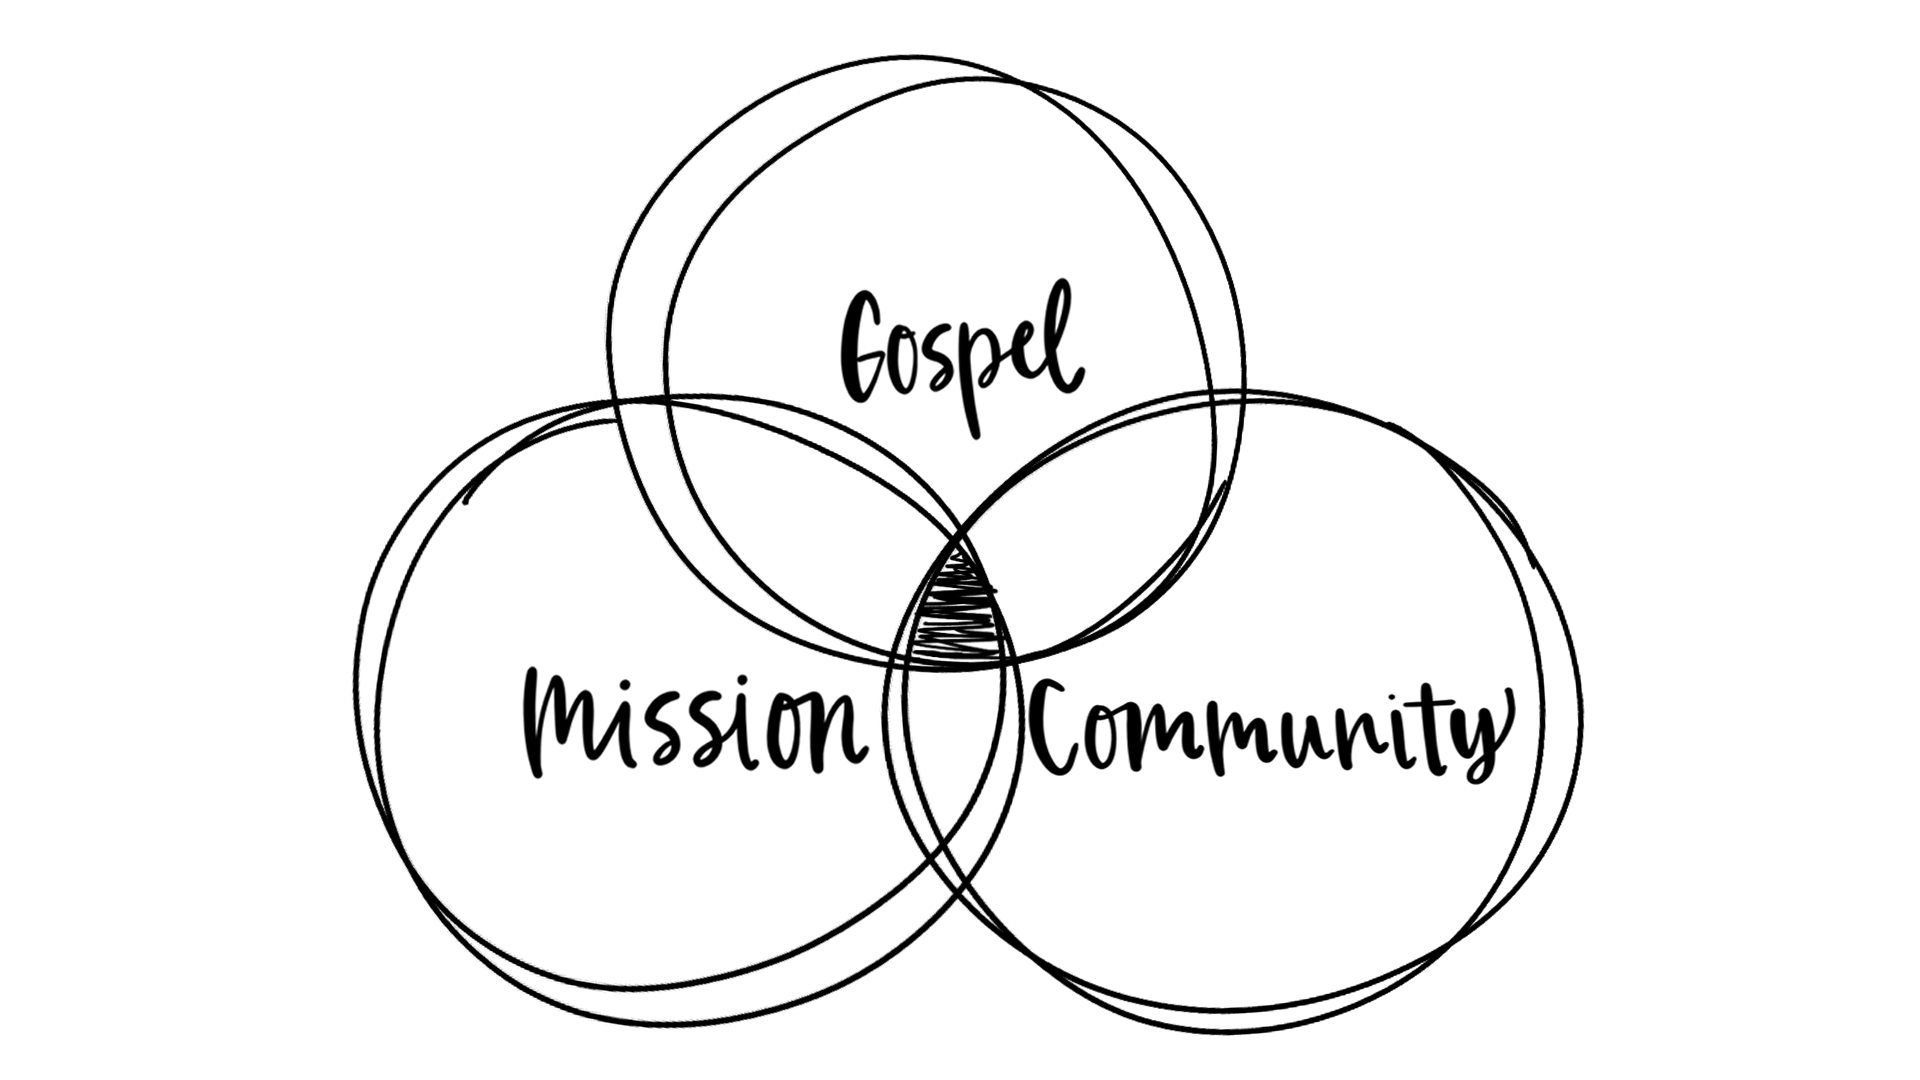 gospel_mission_community white background.png